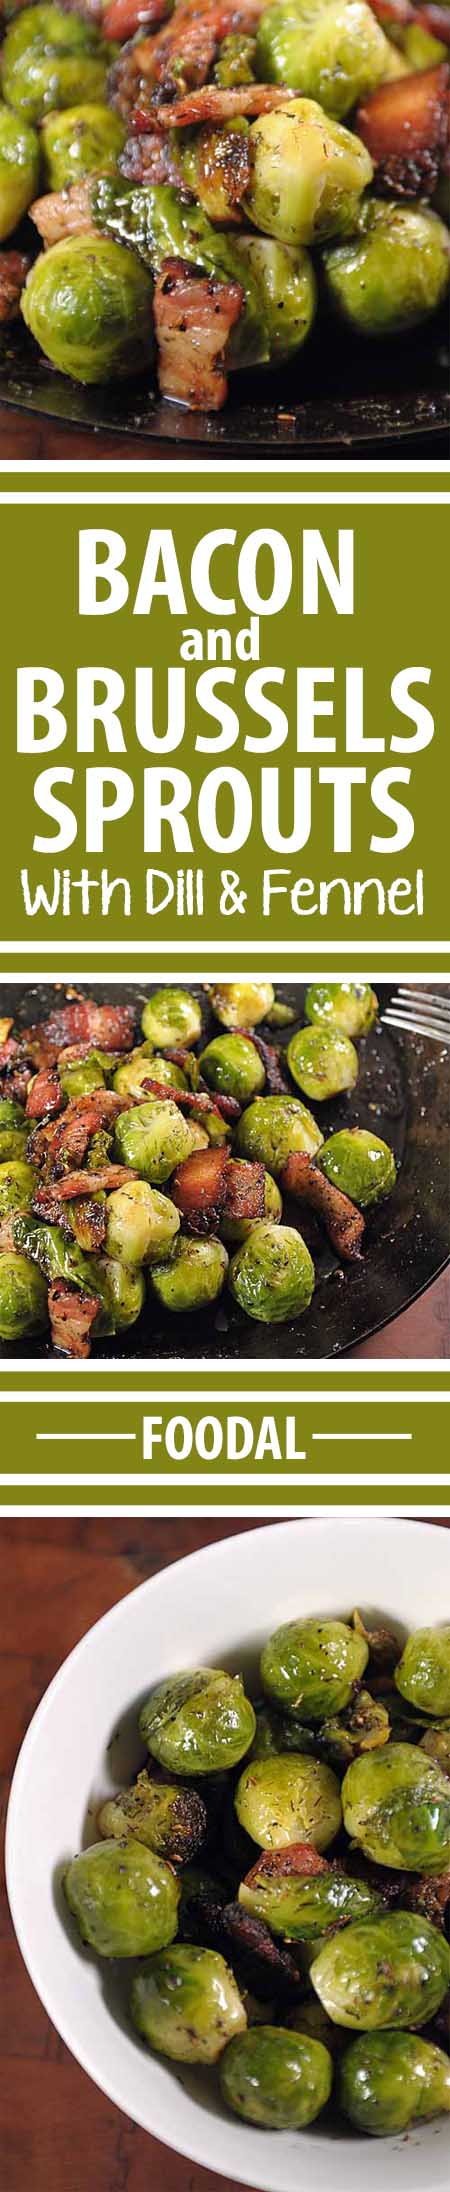 Have you always thought that Brussels sprouts were icky? If so, give this recipe a whirl. The added bacon gives it the flavor and texture that makes it very tasty. And the added fats helps your body absorb the nutrients packed into the sprouts. And that is what is called a win-win! Get the recipe here: https://foodal.com/recipes/veggies/organic-brussels-sprouts-sauteed-with-bacon/